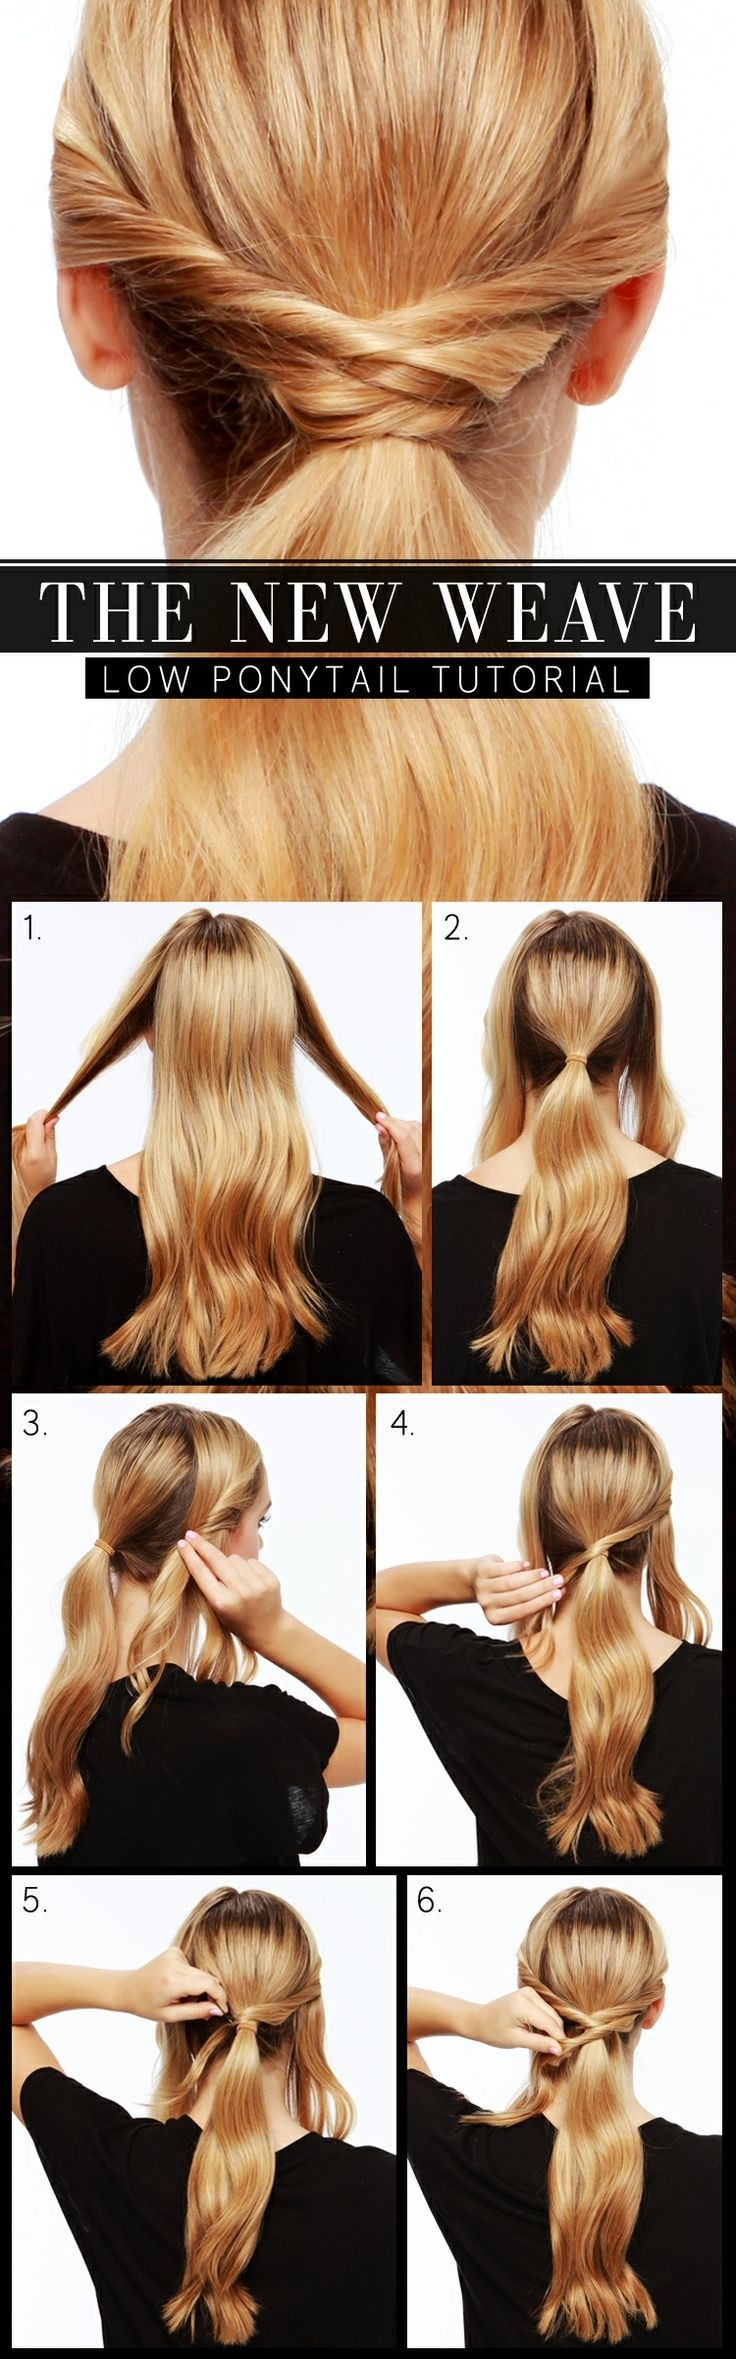 The New Weave Low Ponytail Hairstyle Tutorial